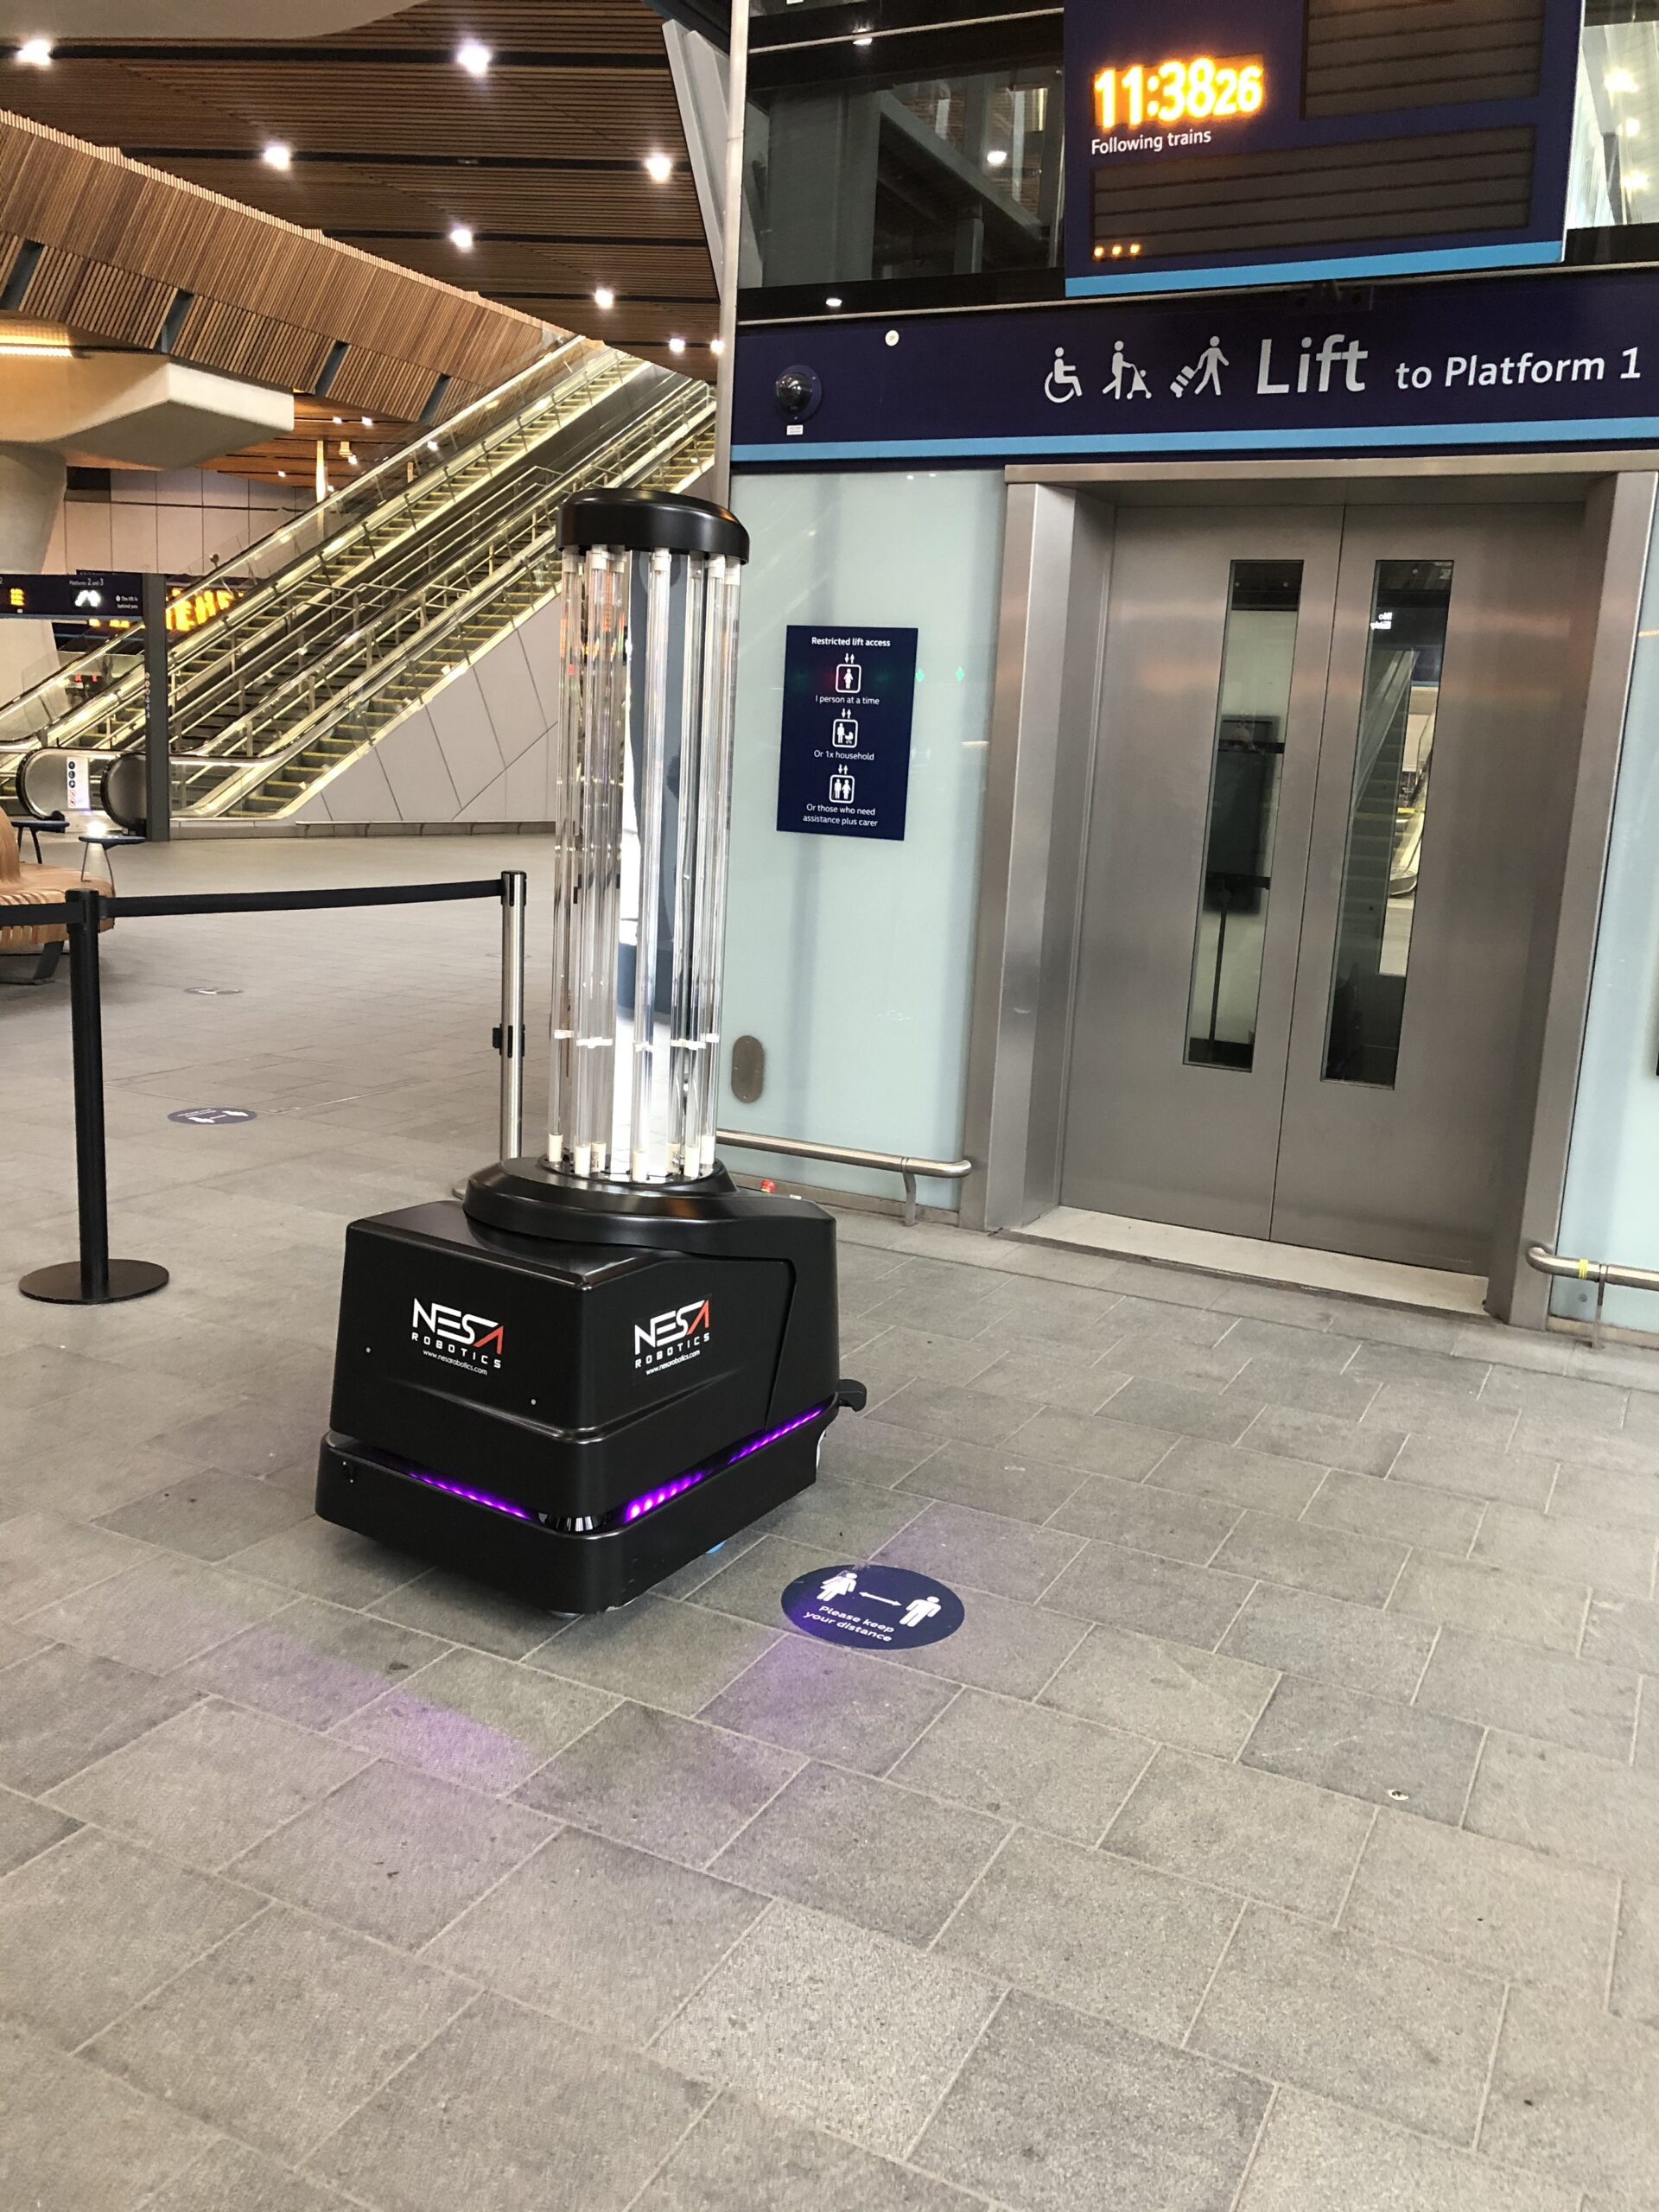 UVD Robot in front of a lift at London Bridge